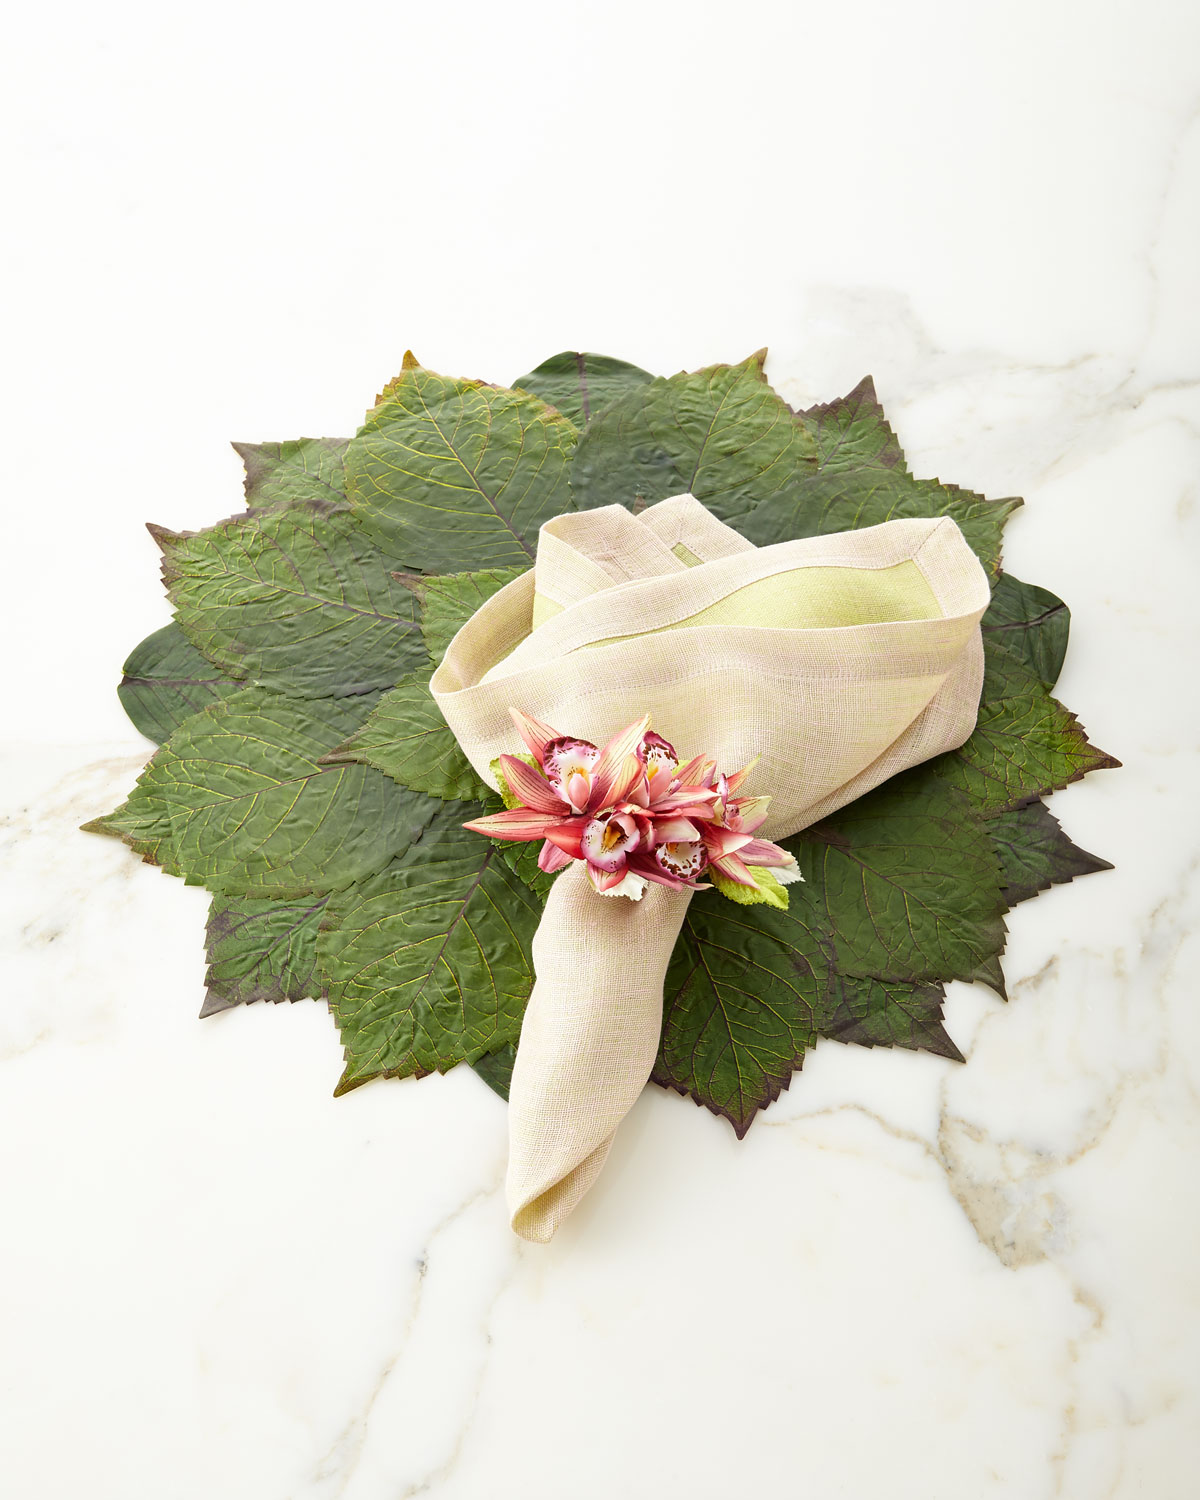 Variegated Leaf Placemat